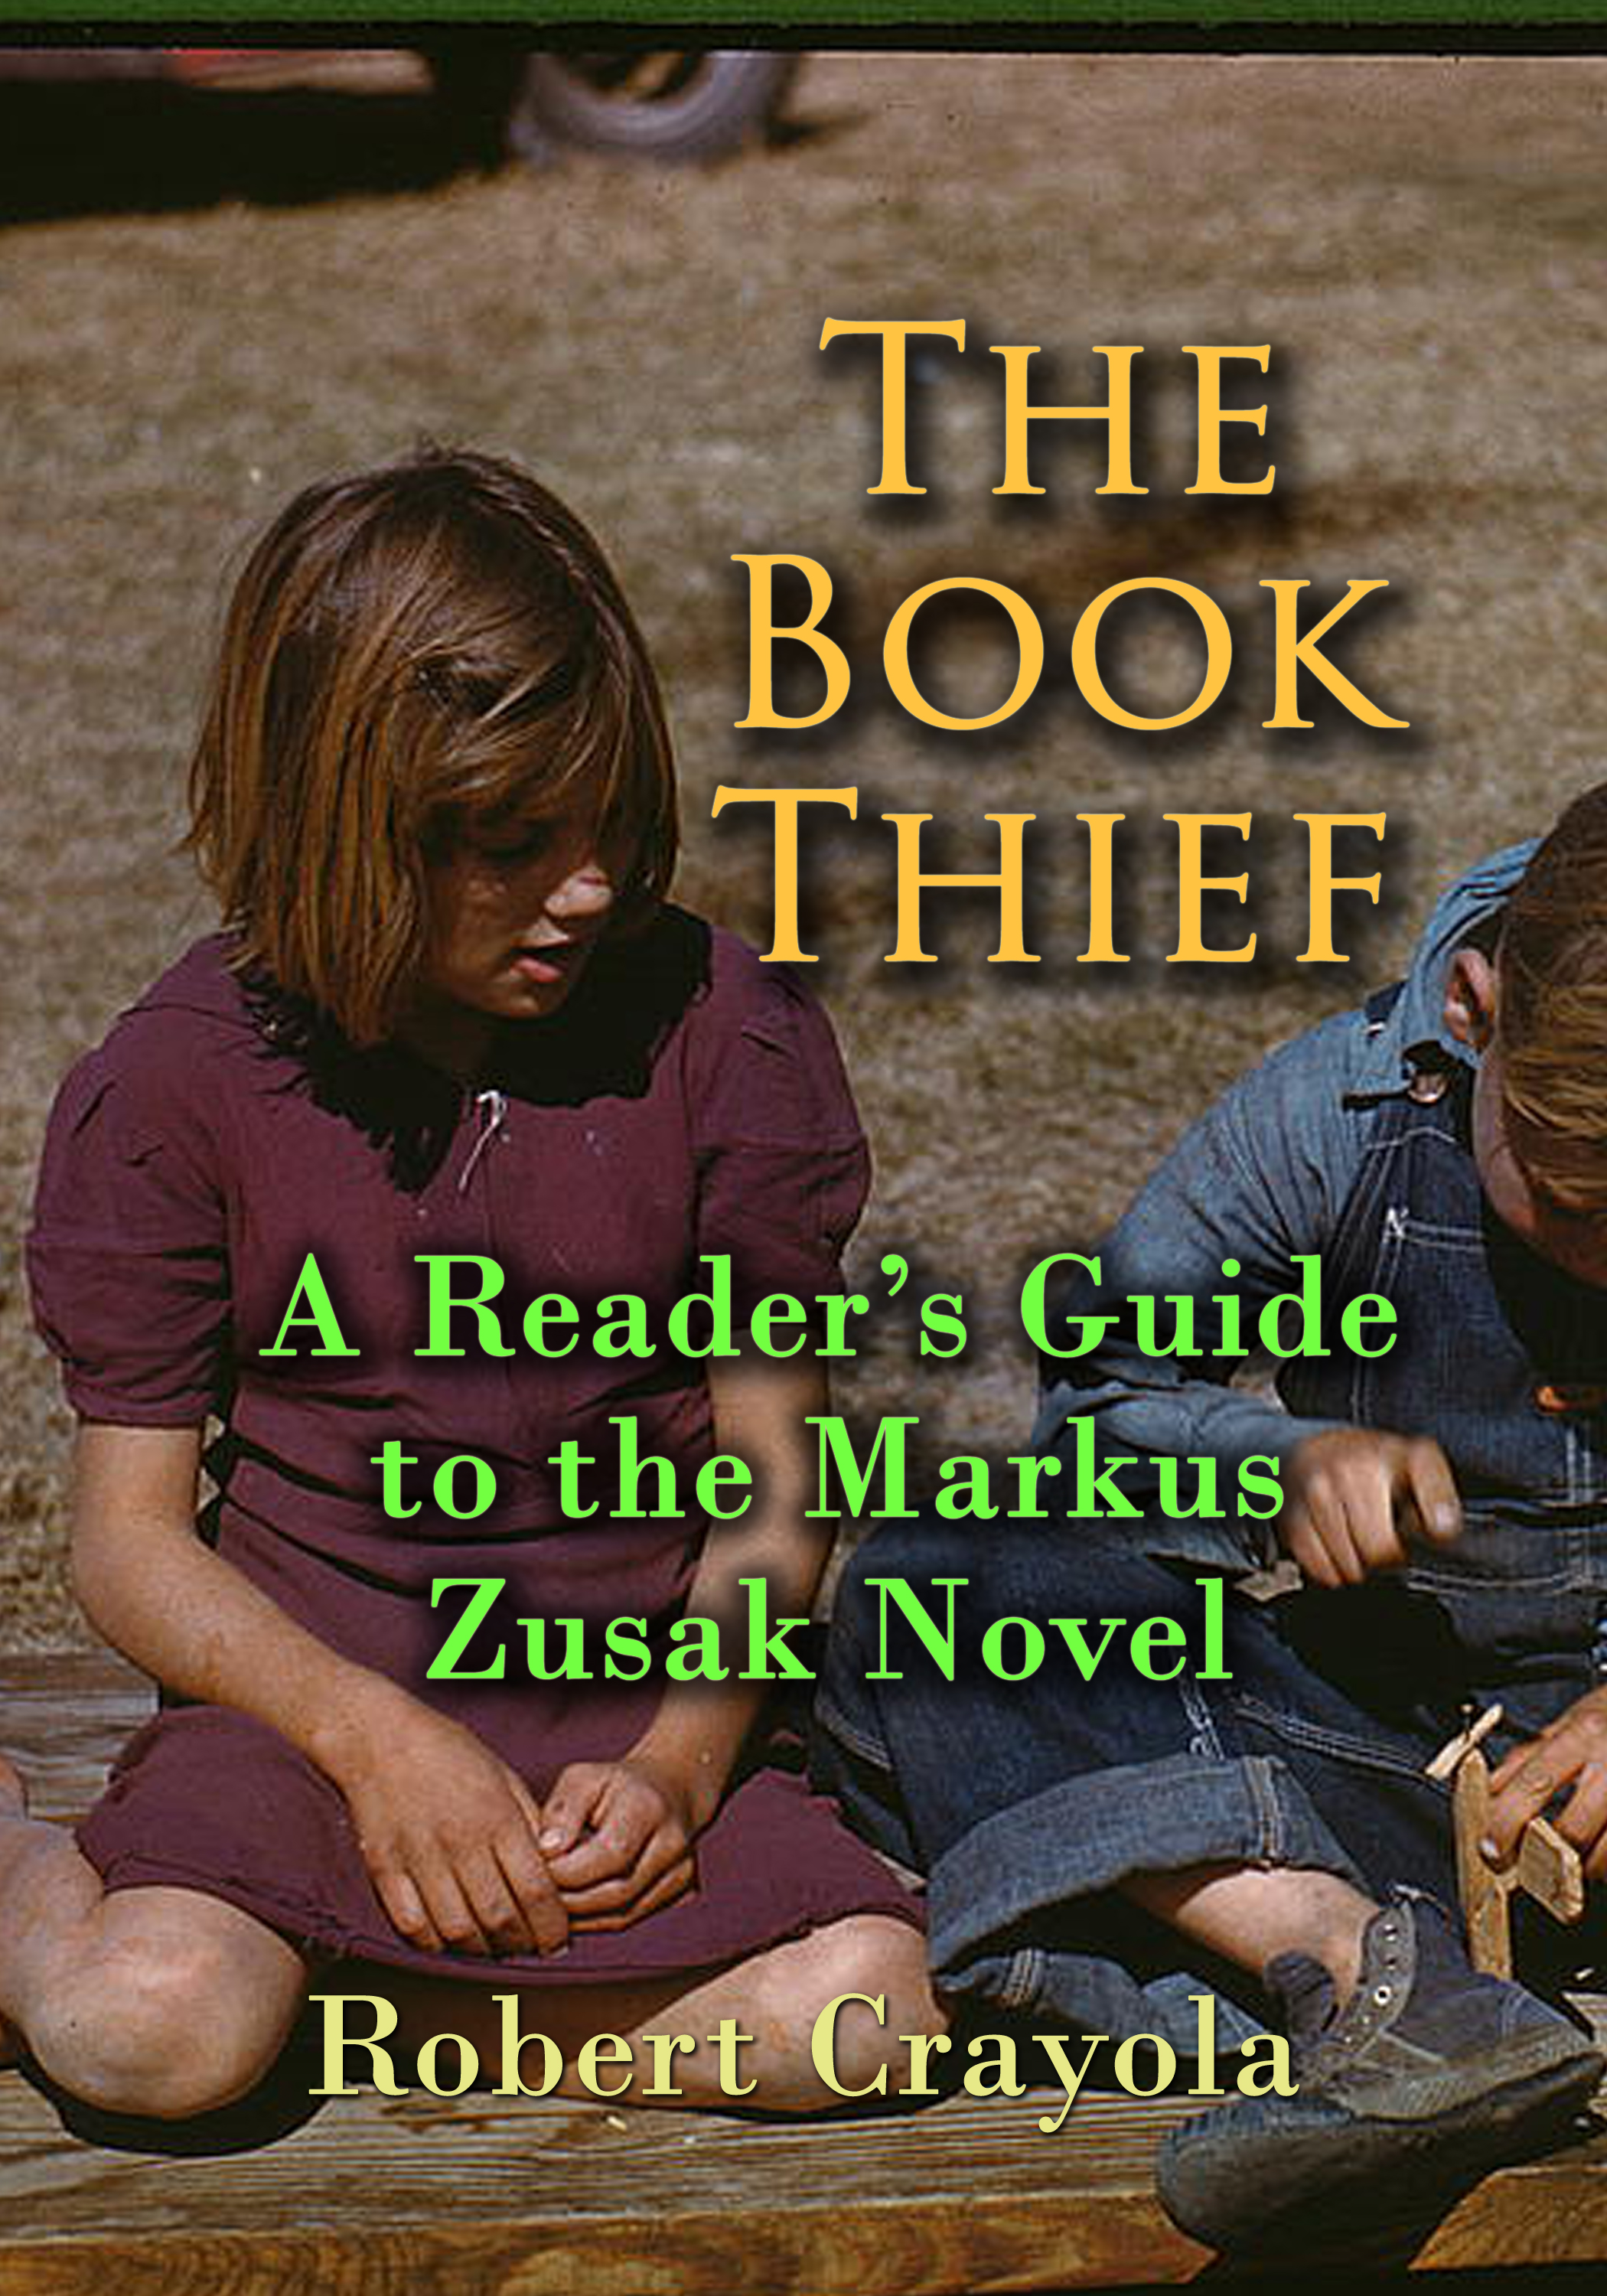 a short summary and recommendation for the book thief a novel by markus zusak Markus zusak's unforgettable story is but it's a great young-adult novelit's the kind of book that can but the book thief deserves a place on the same.